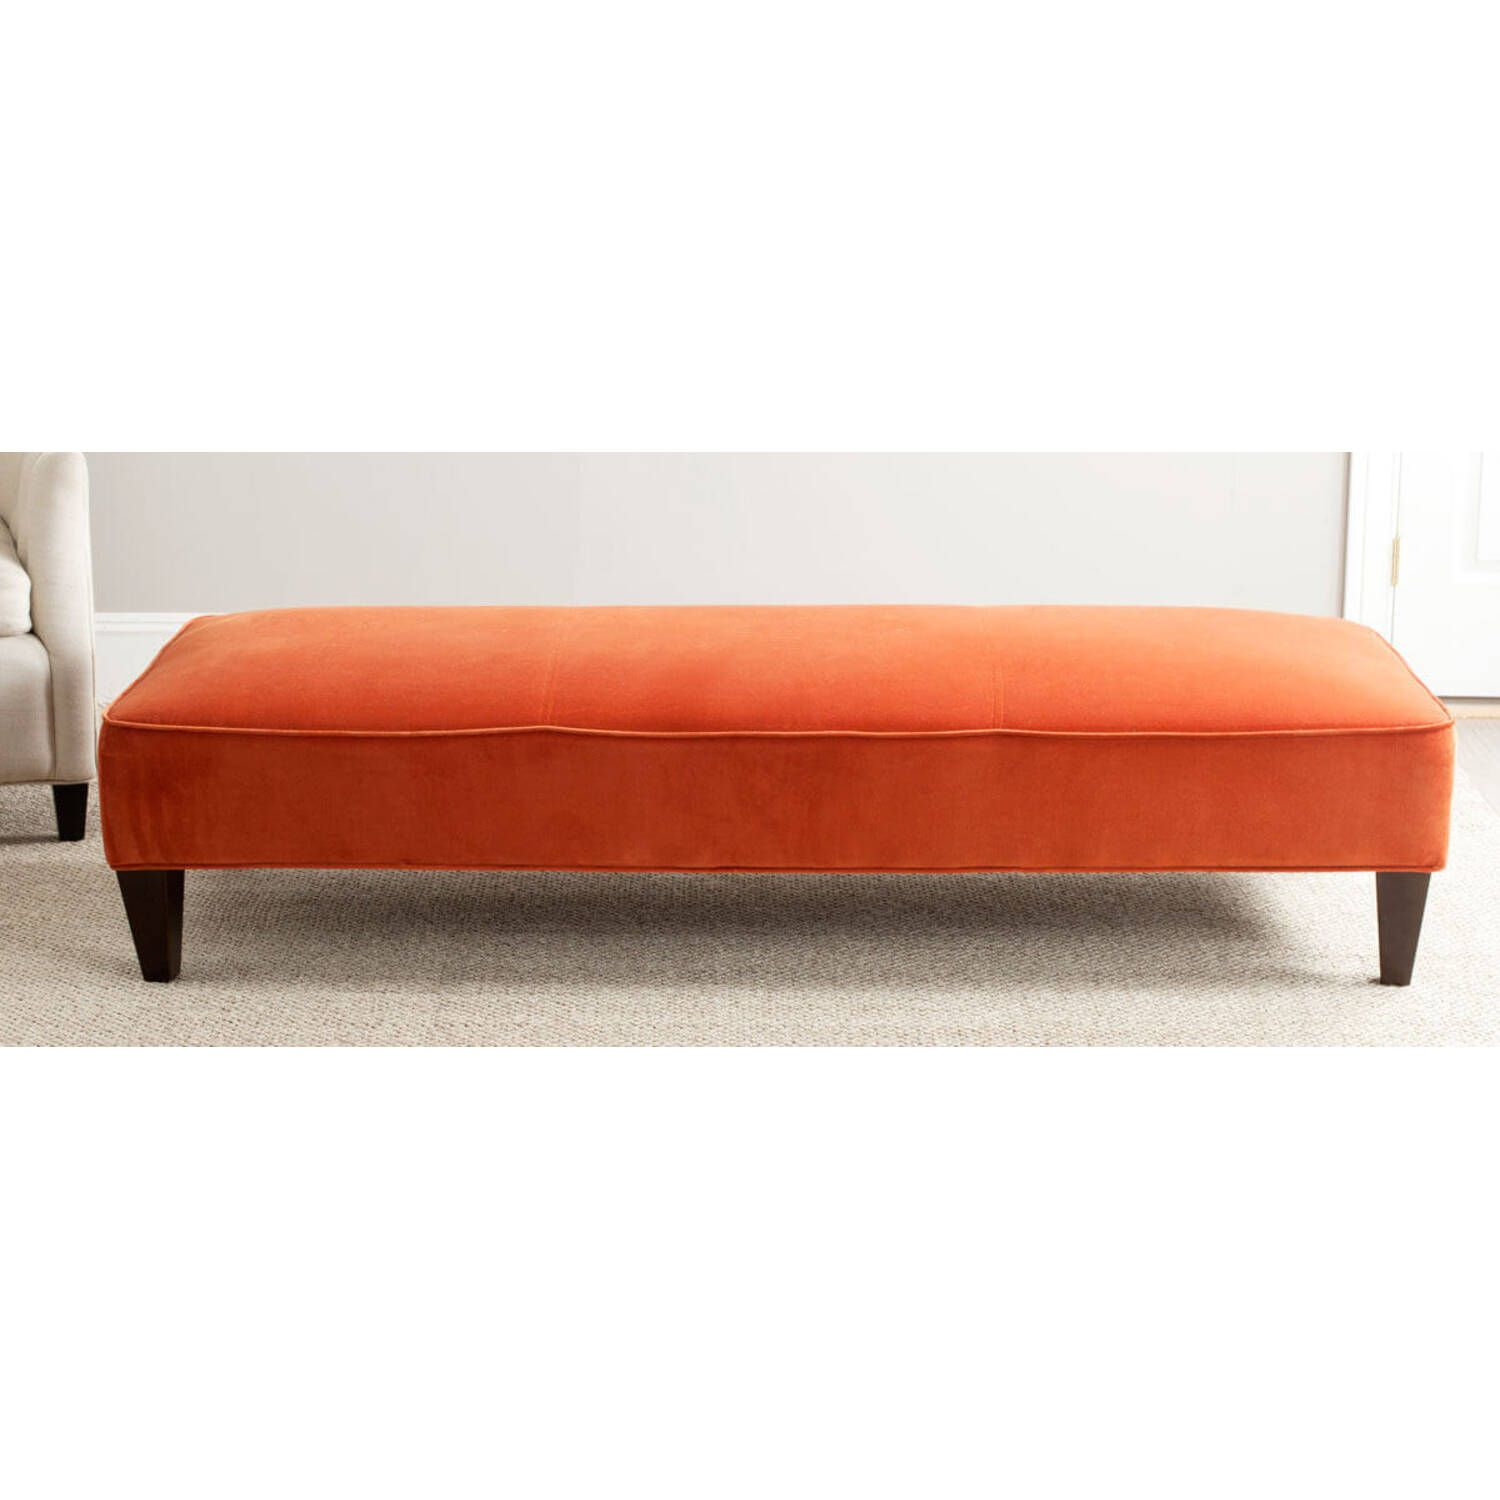 Банкетка Harlow Lounging Bench, оранжевая